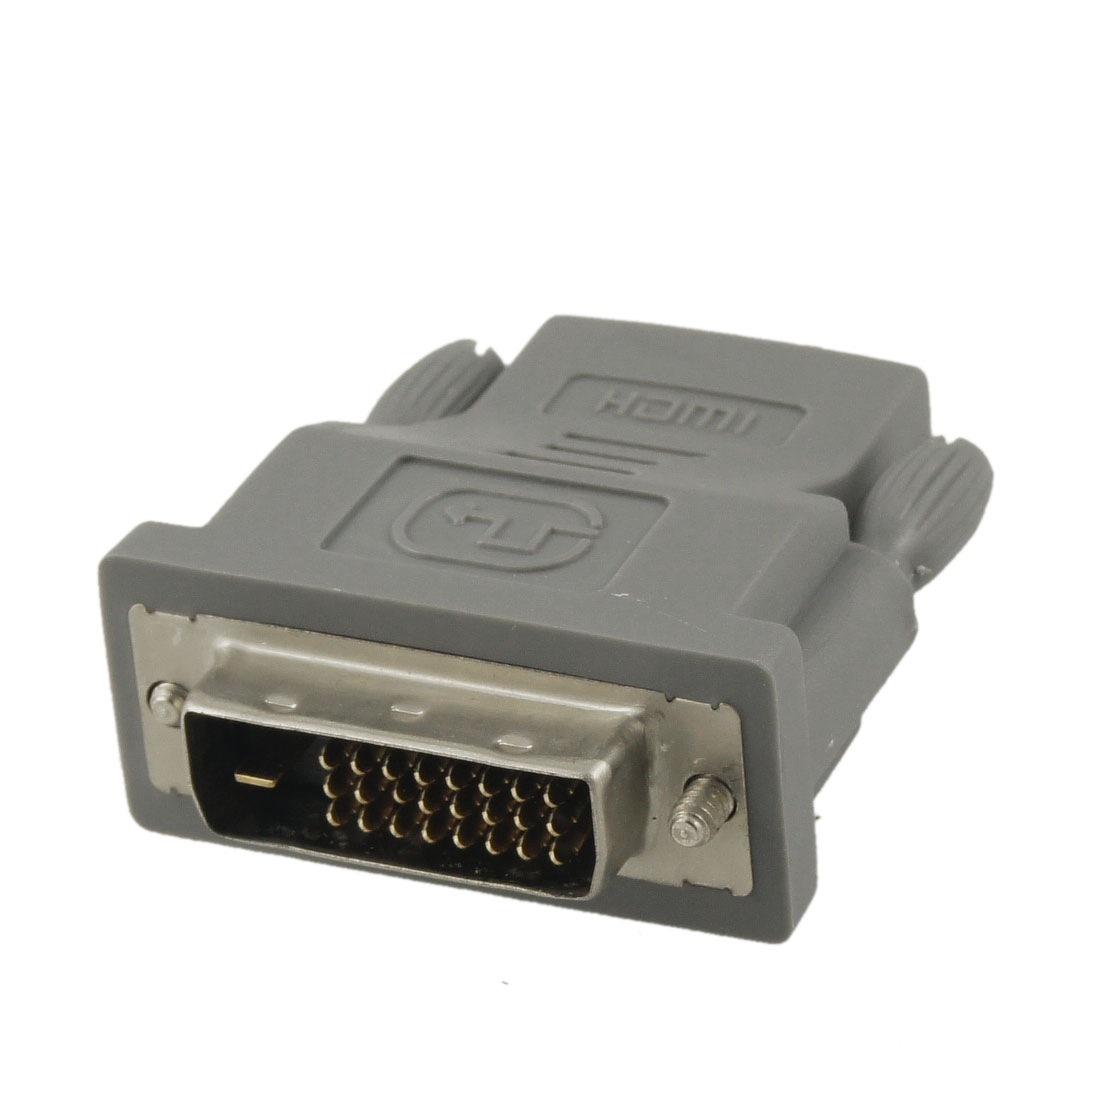 DVI-D 24+1 Pin Male to HDMI Female Adapter Connector for Projector